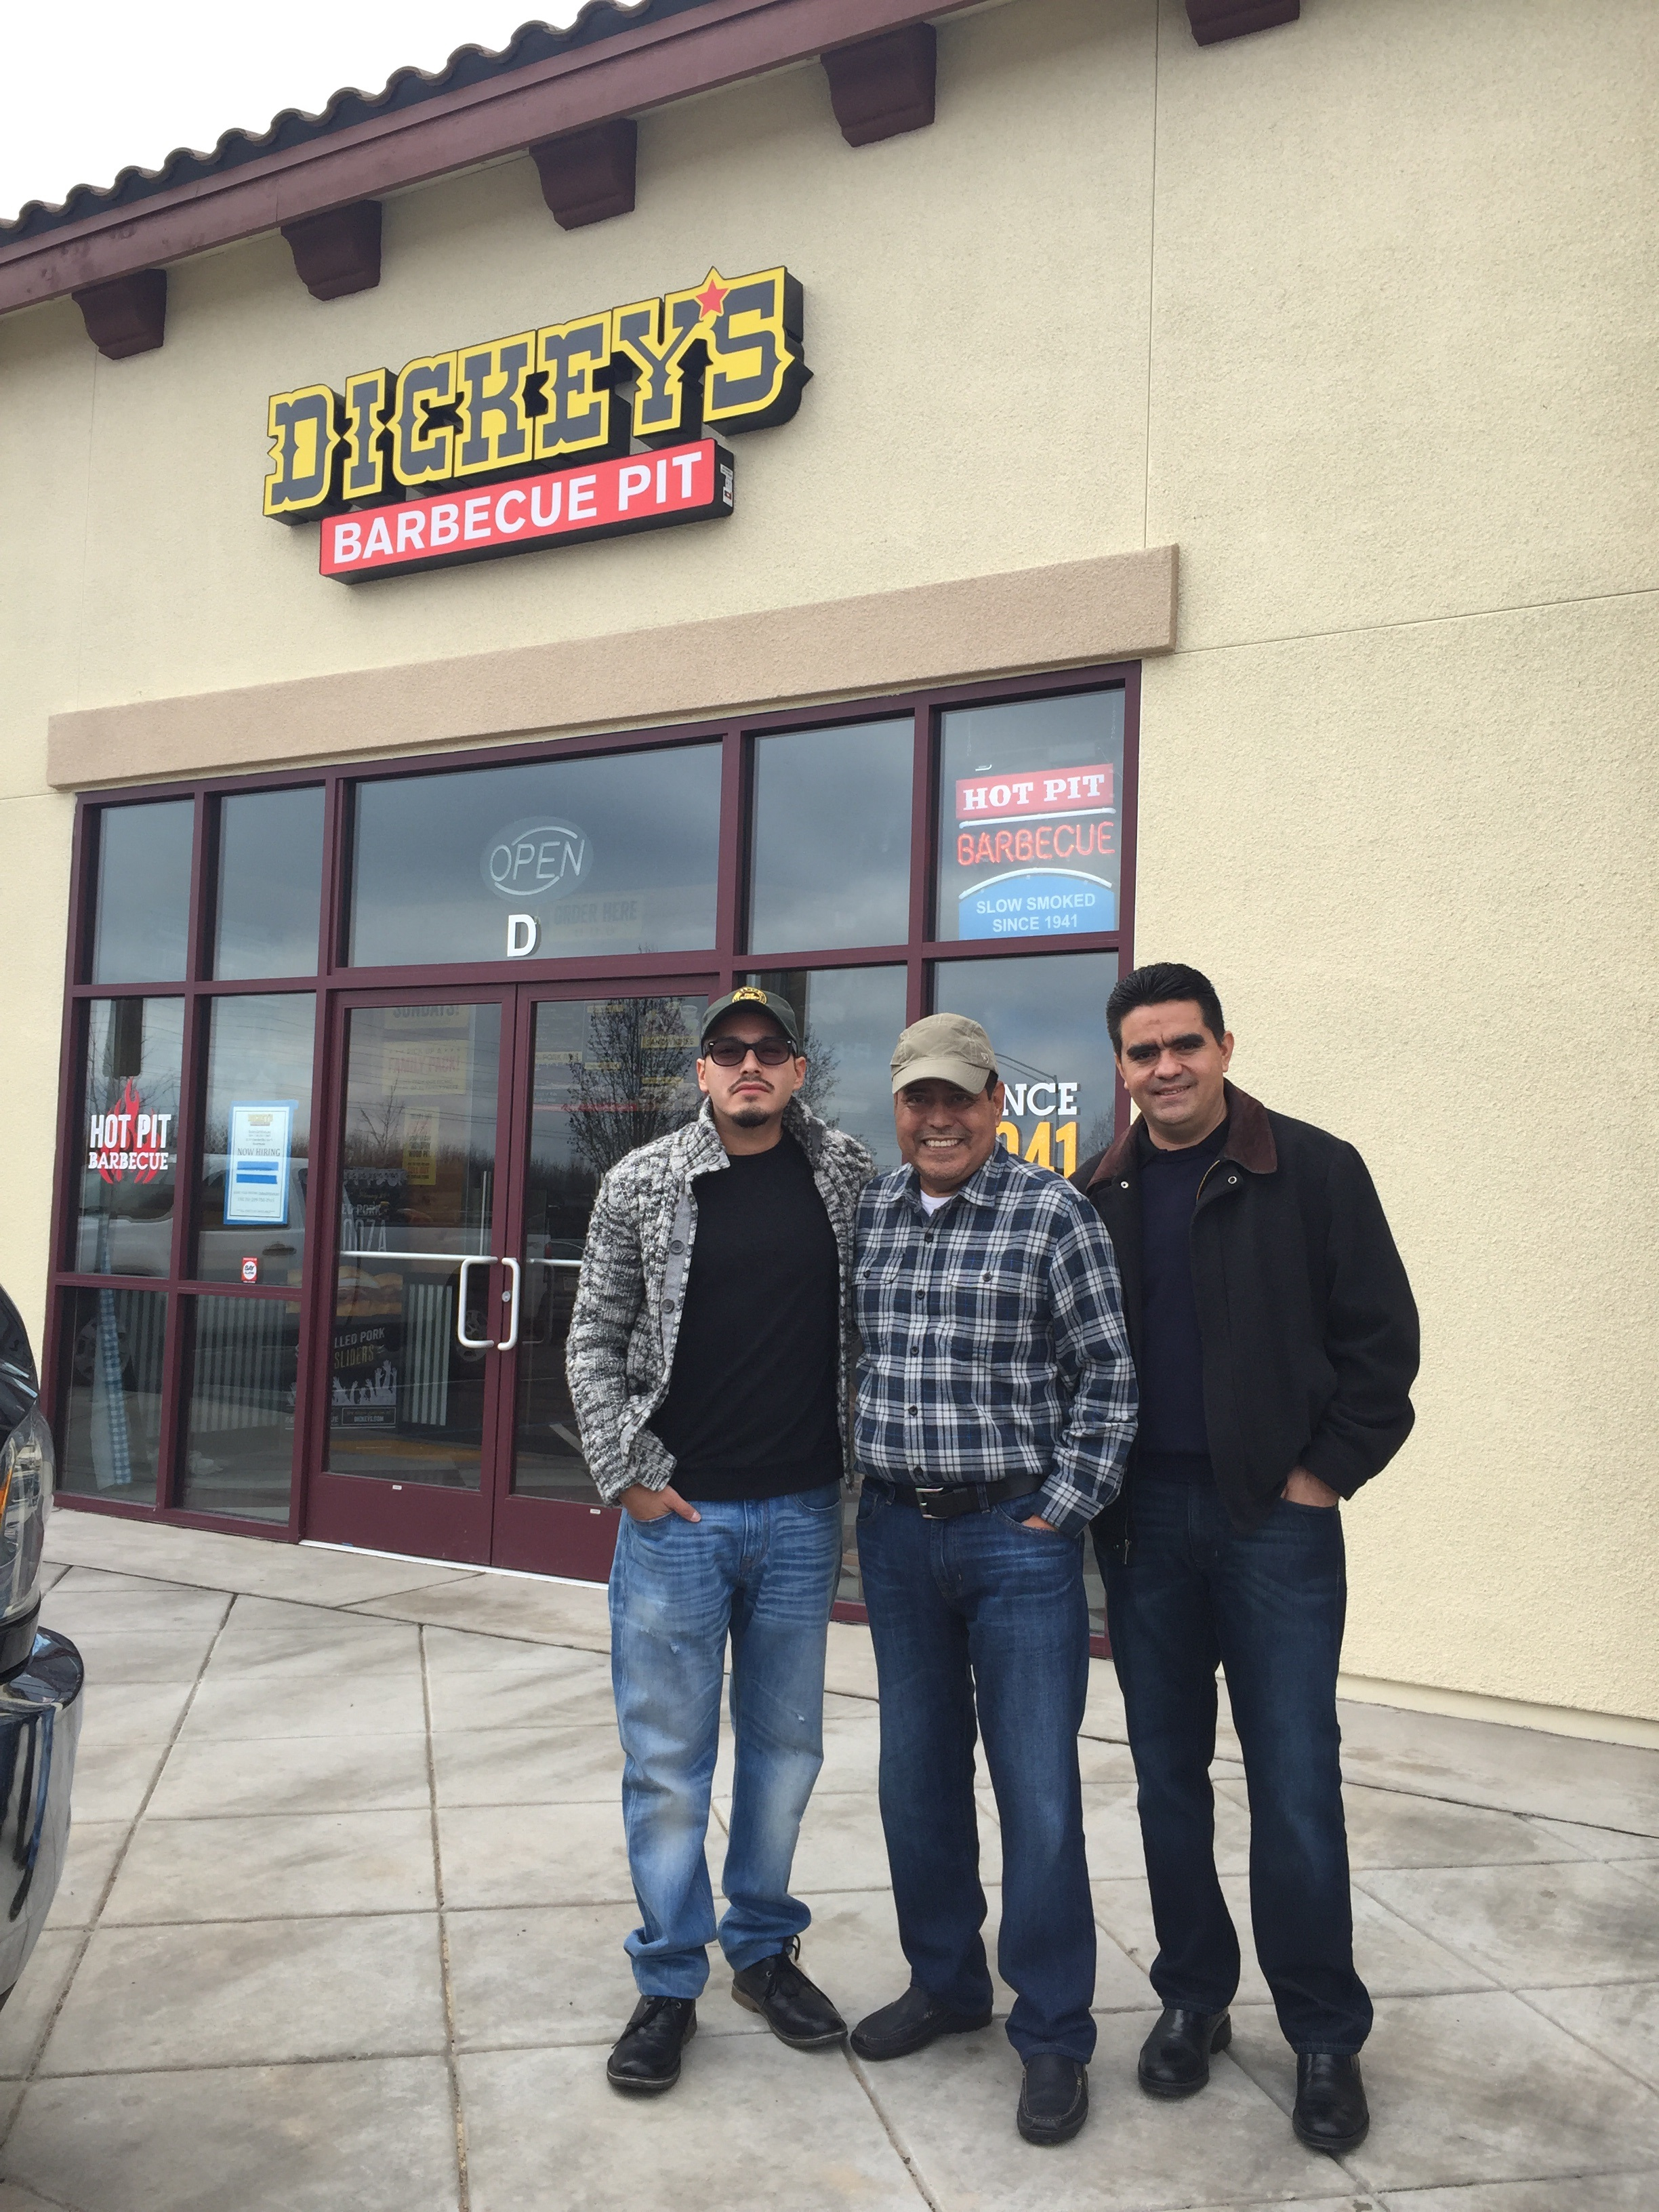 Dickey's Barbecue Pit Brings a Taste of Texas to Riverbank